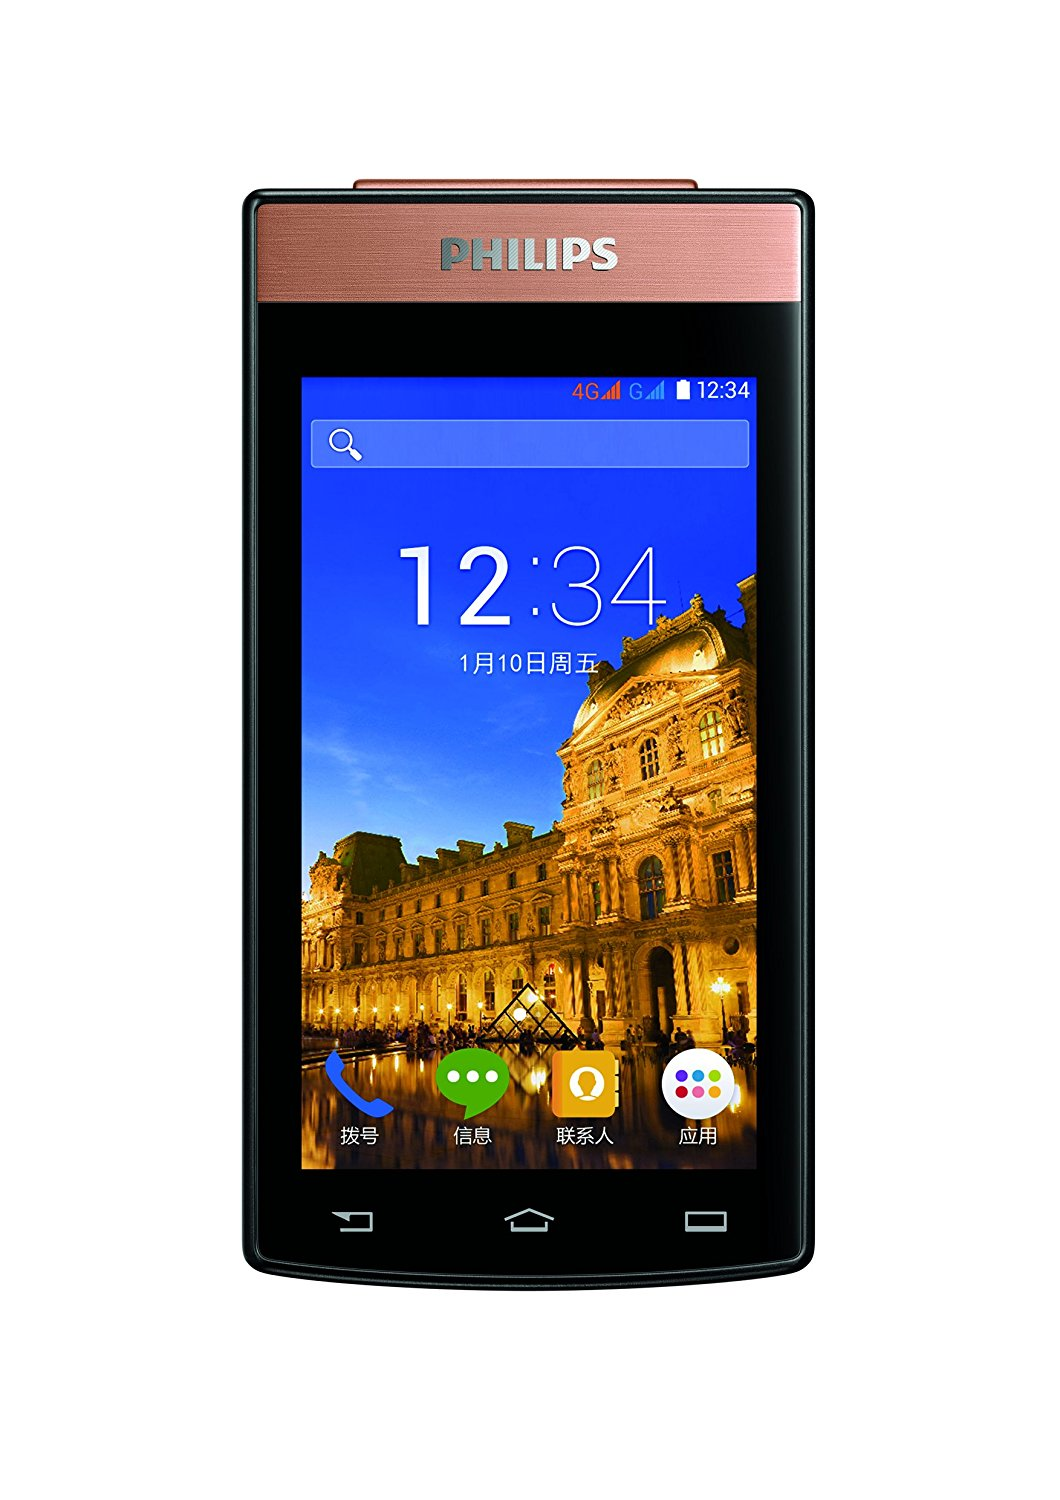 Mobile Communications PHILIPS Philips V989 new clamshell phone dual card dual standby quad-core dual